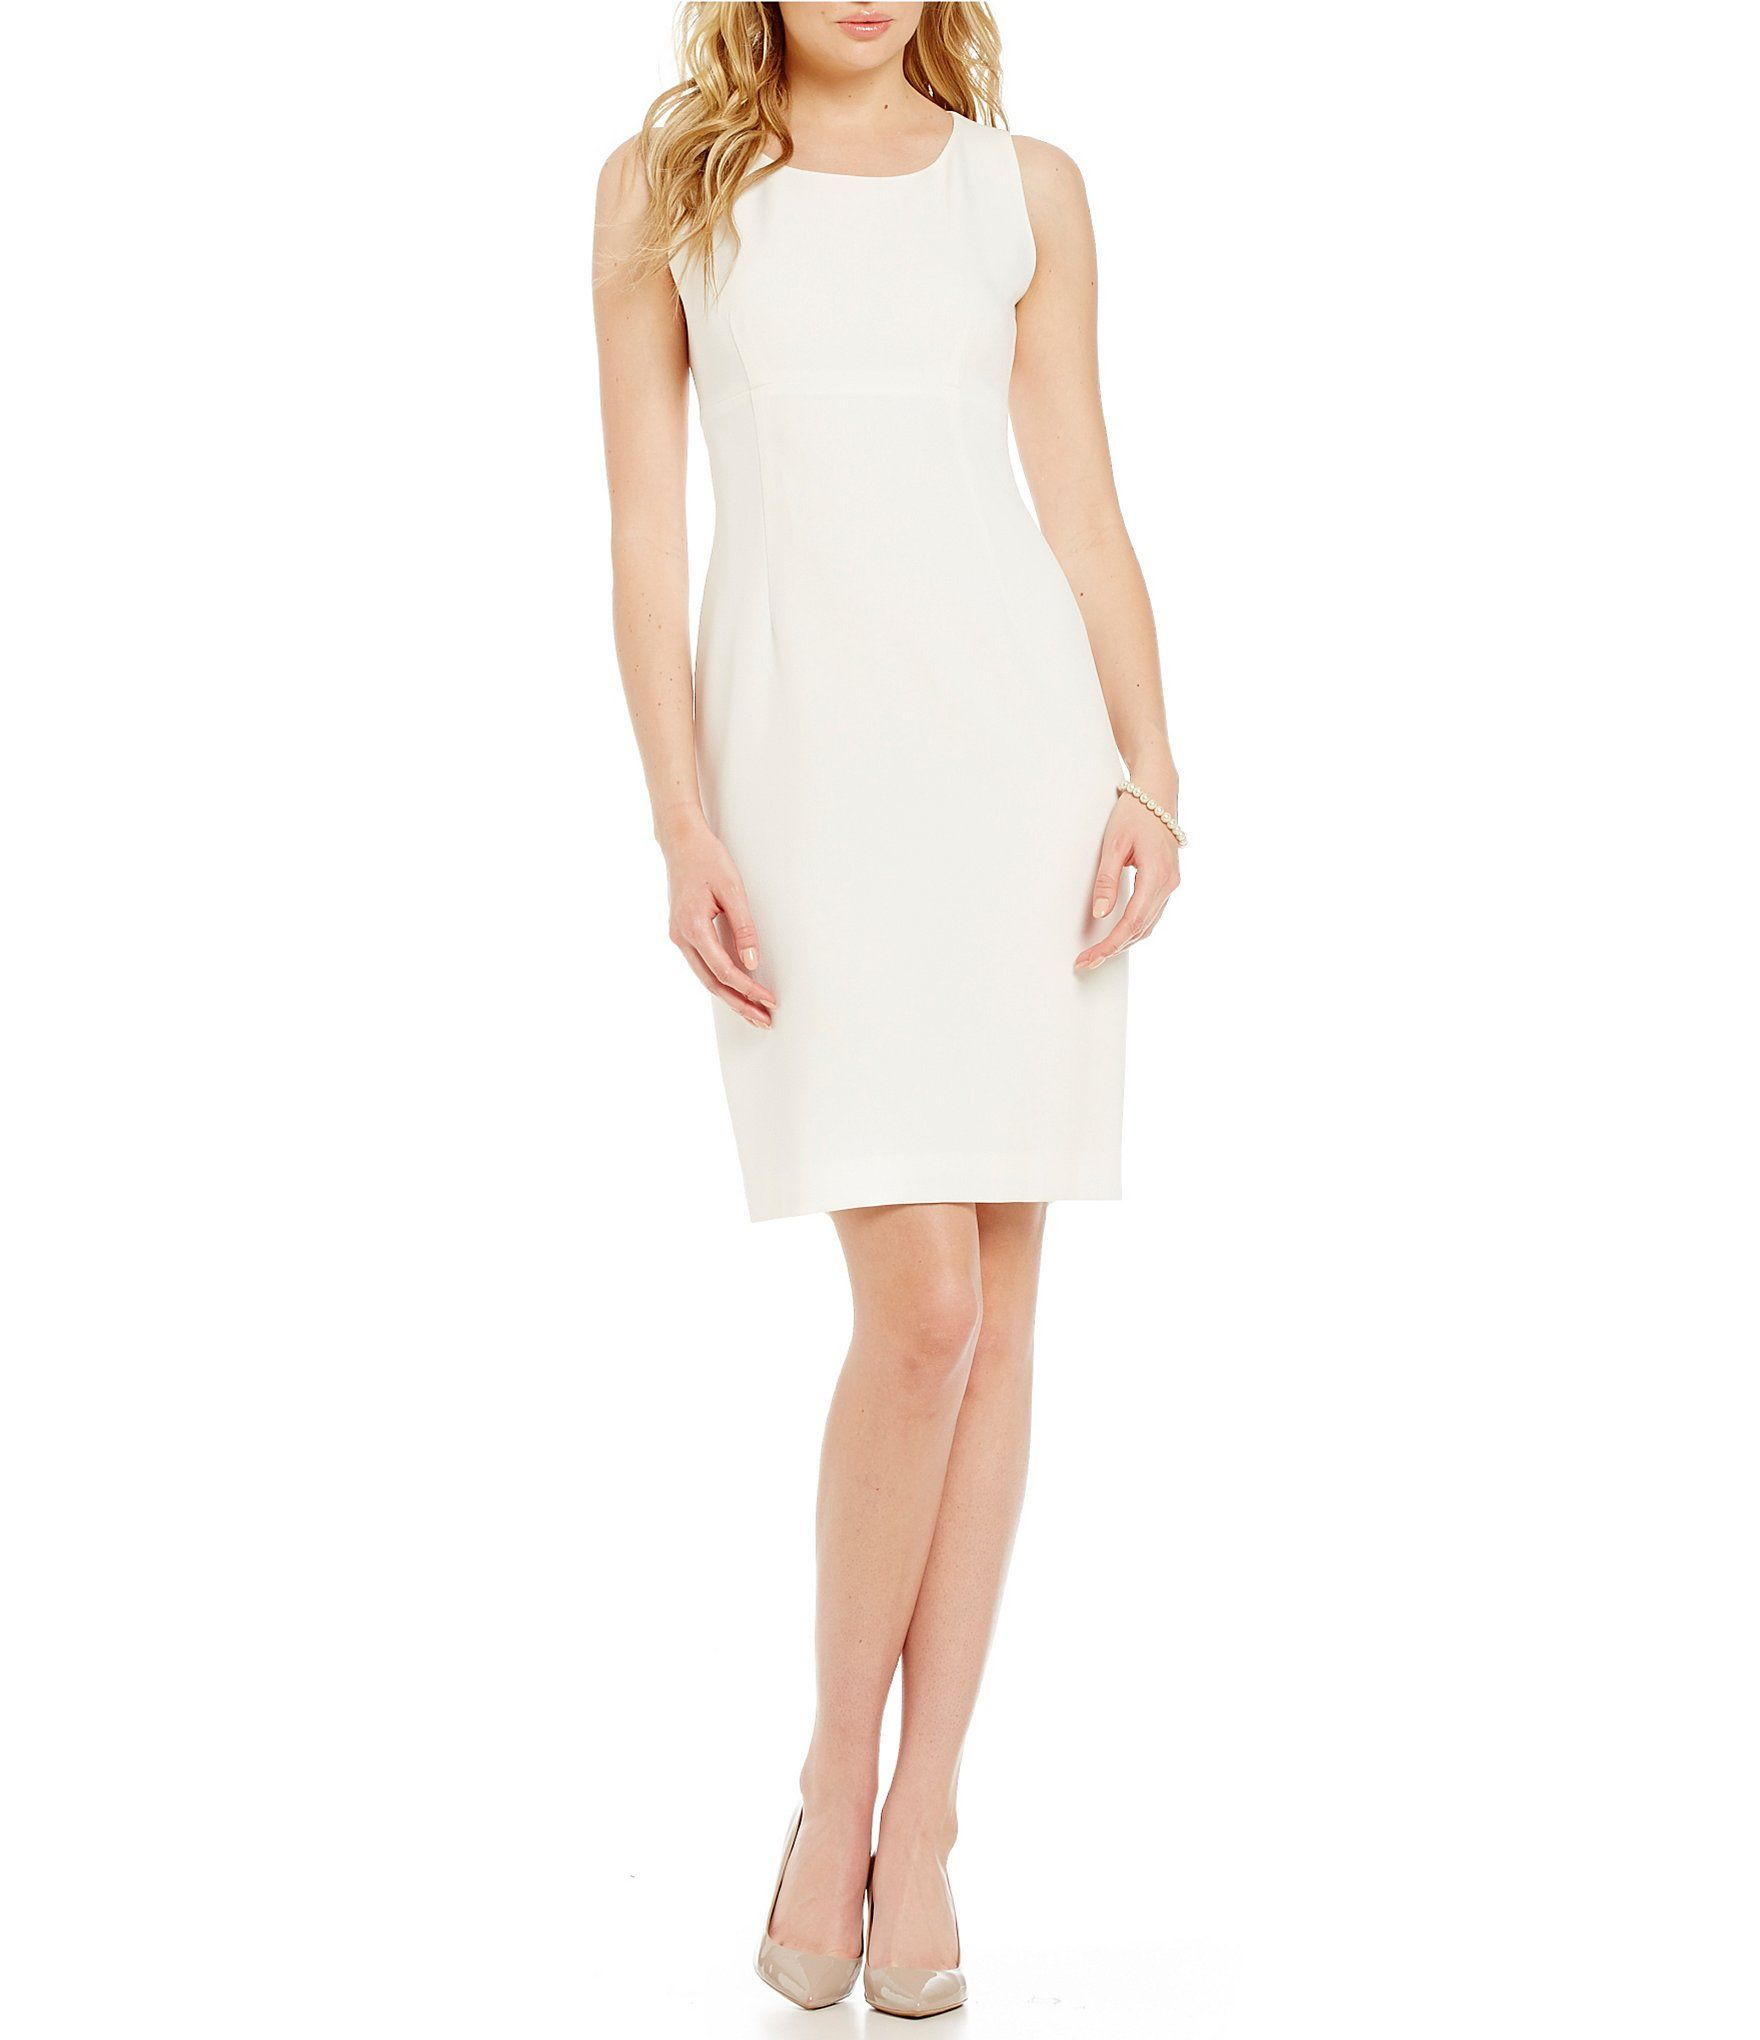 Jcpenney dresses for wedding guest  Kasper Crepe Empire Sheath Dress  Crepes Dillards and Empire